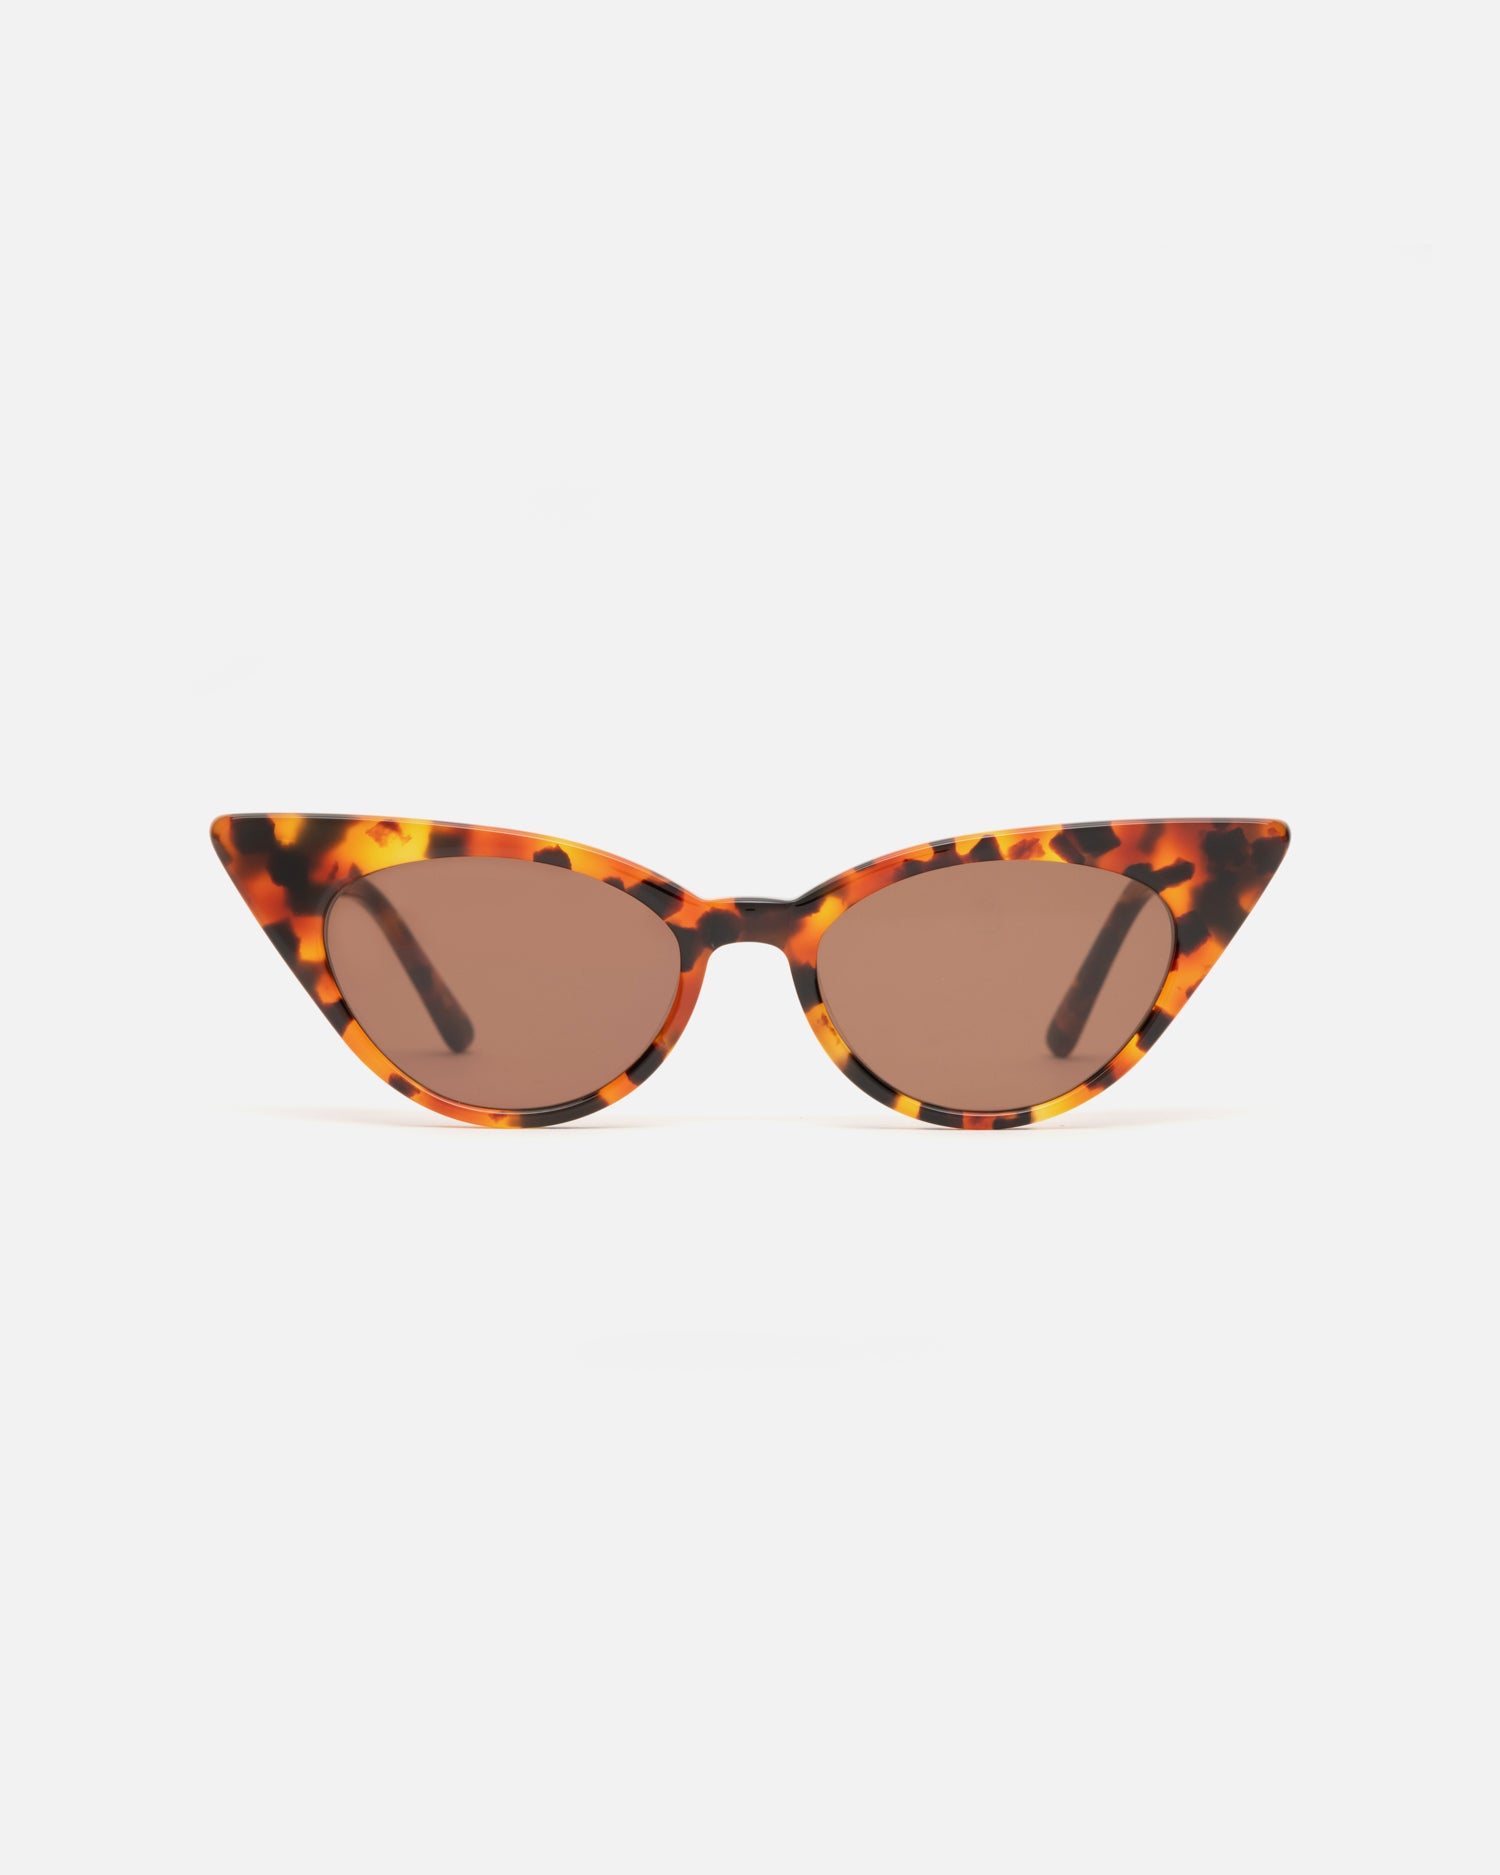 Lu Goldie Brigitte cat eye Sunglasses in tortoise shell acetate with brown lenses, front